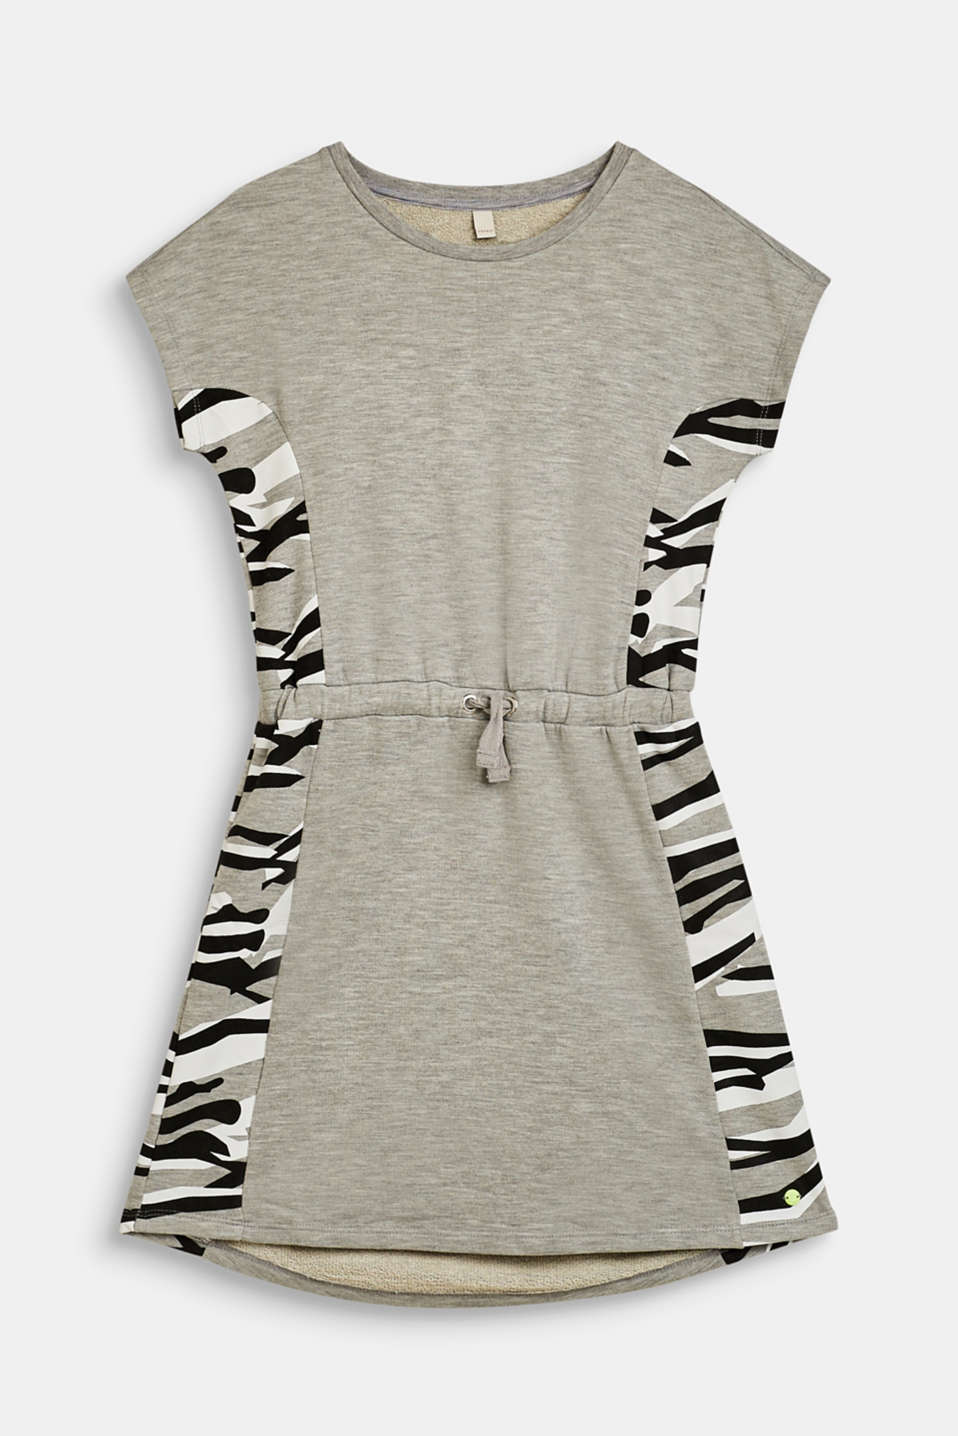 Esprit - Melange sweatshirt dress with a zebra print